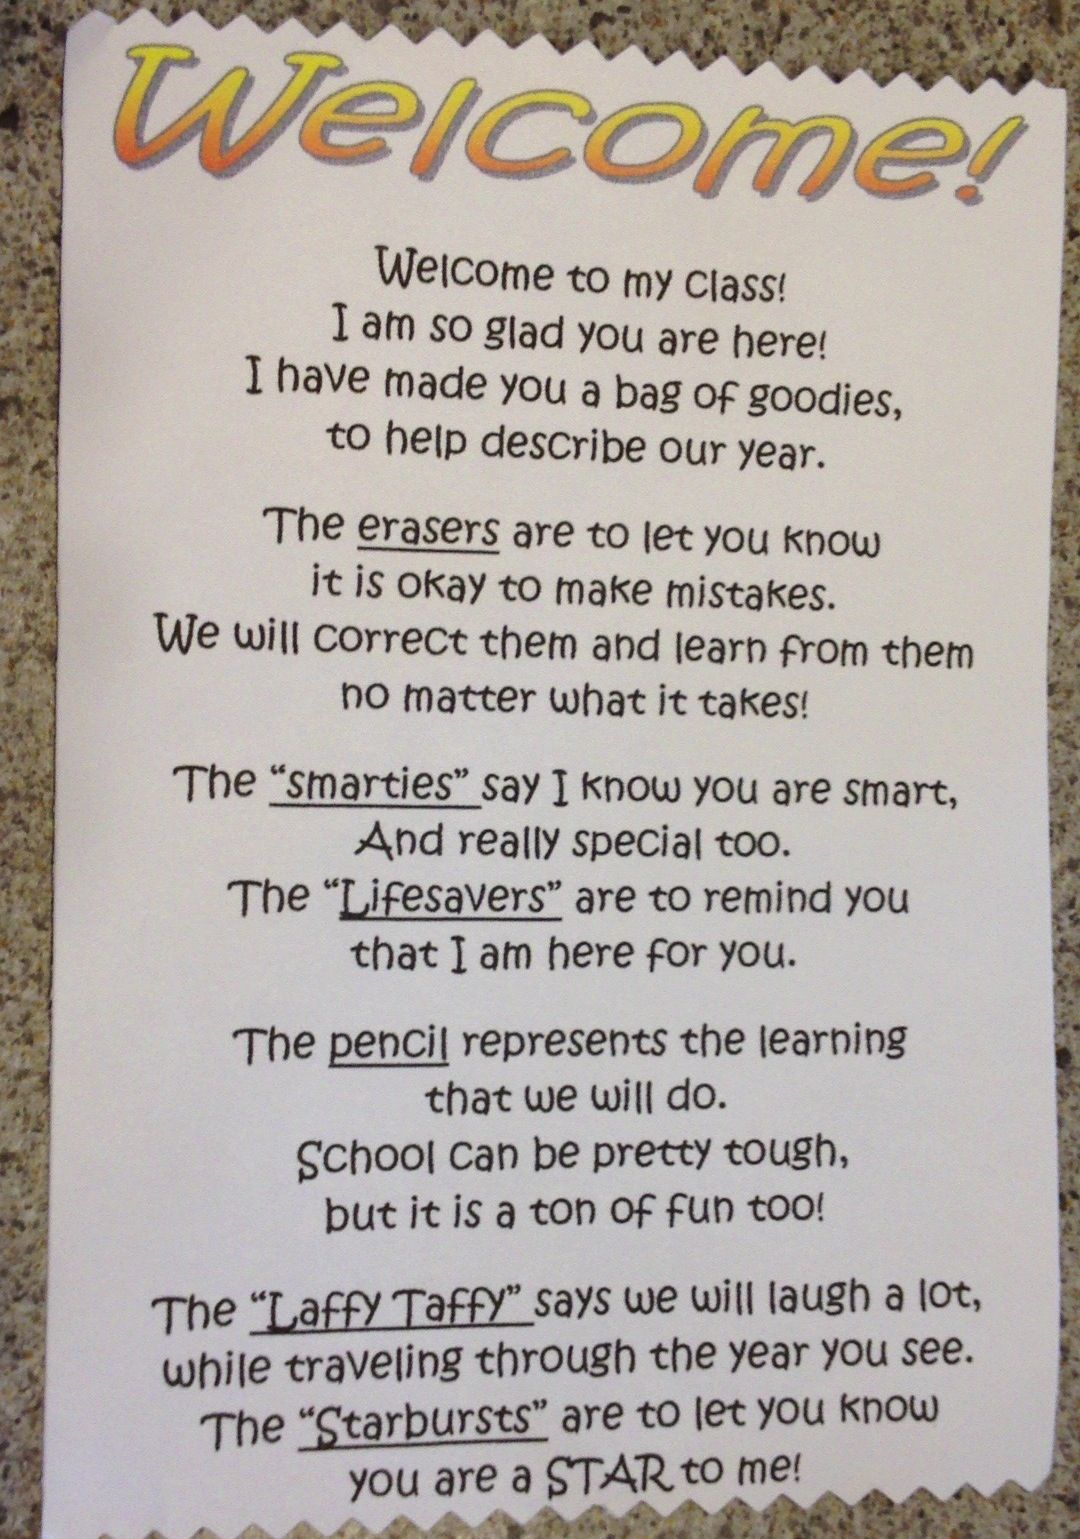 Welcome Note With Goody Bag For Students On First Day Of School